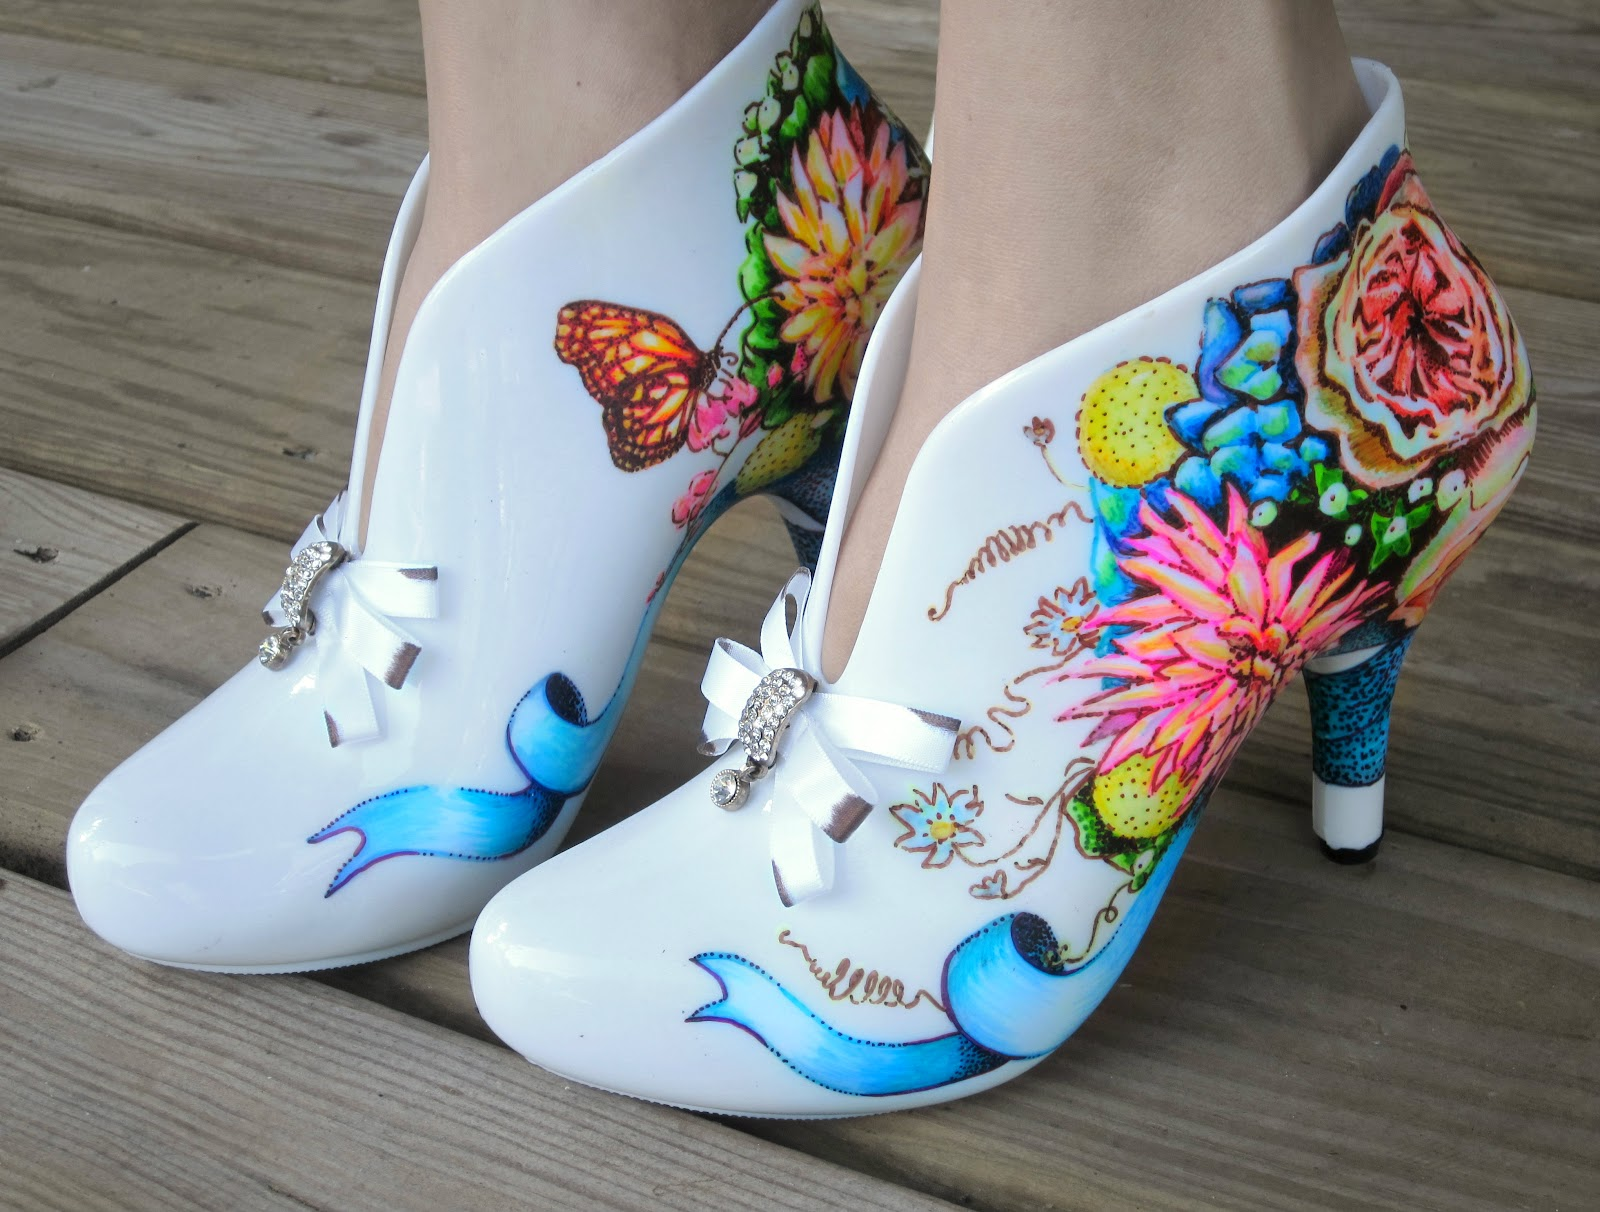 the painted shoes by miranda